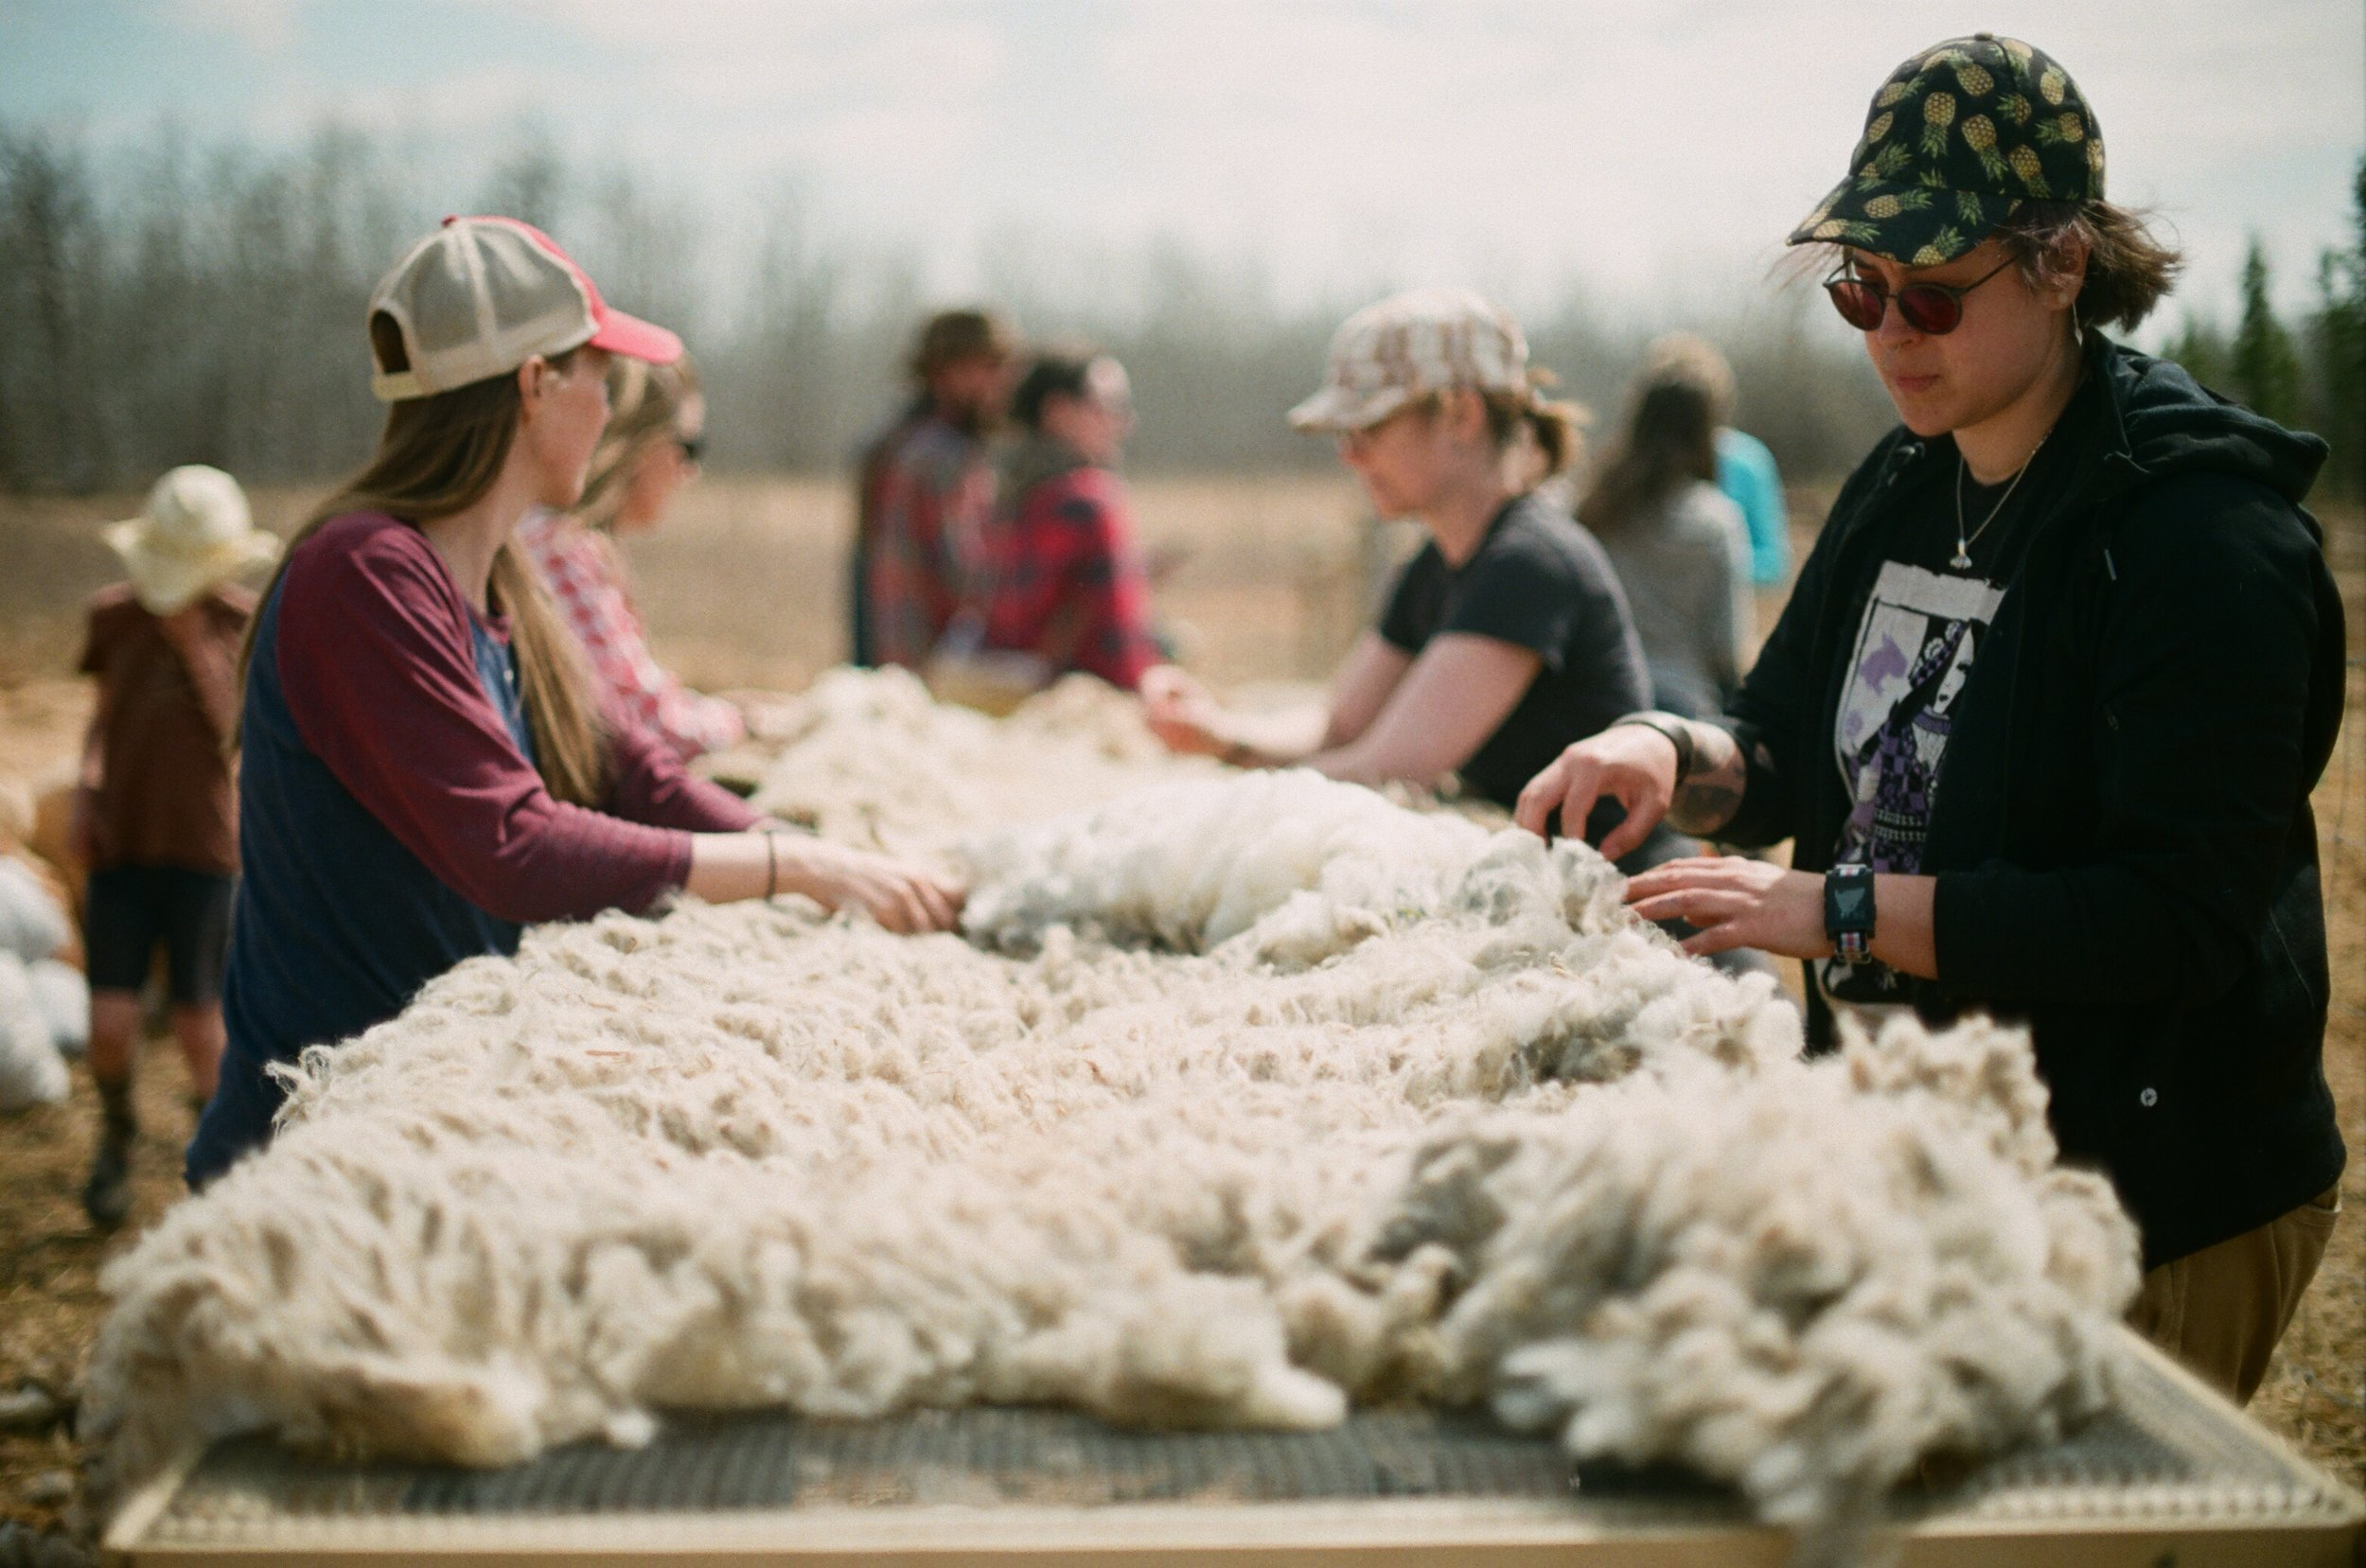 skirting fleeces                                                                                  (Photo by Mackenzie Smith)